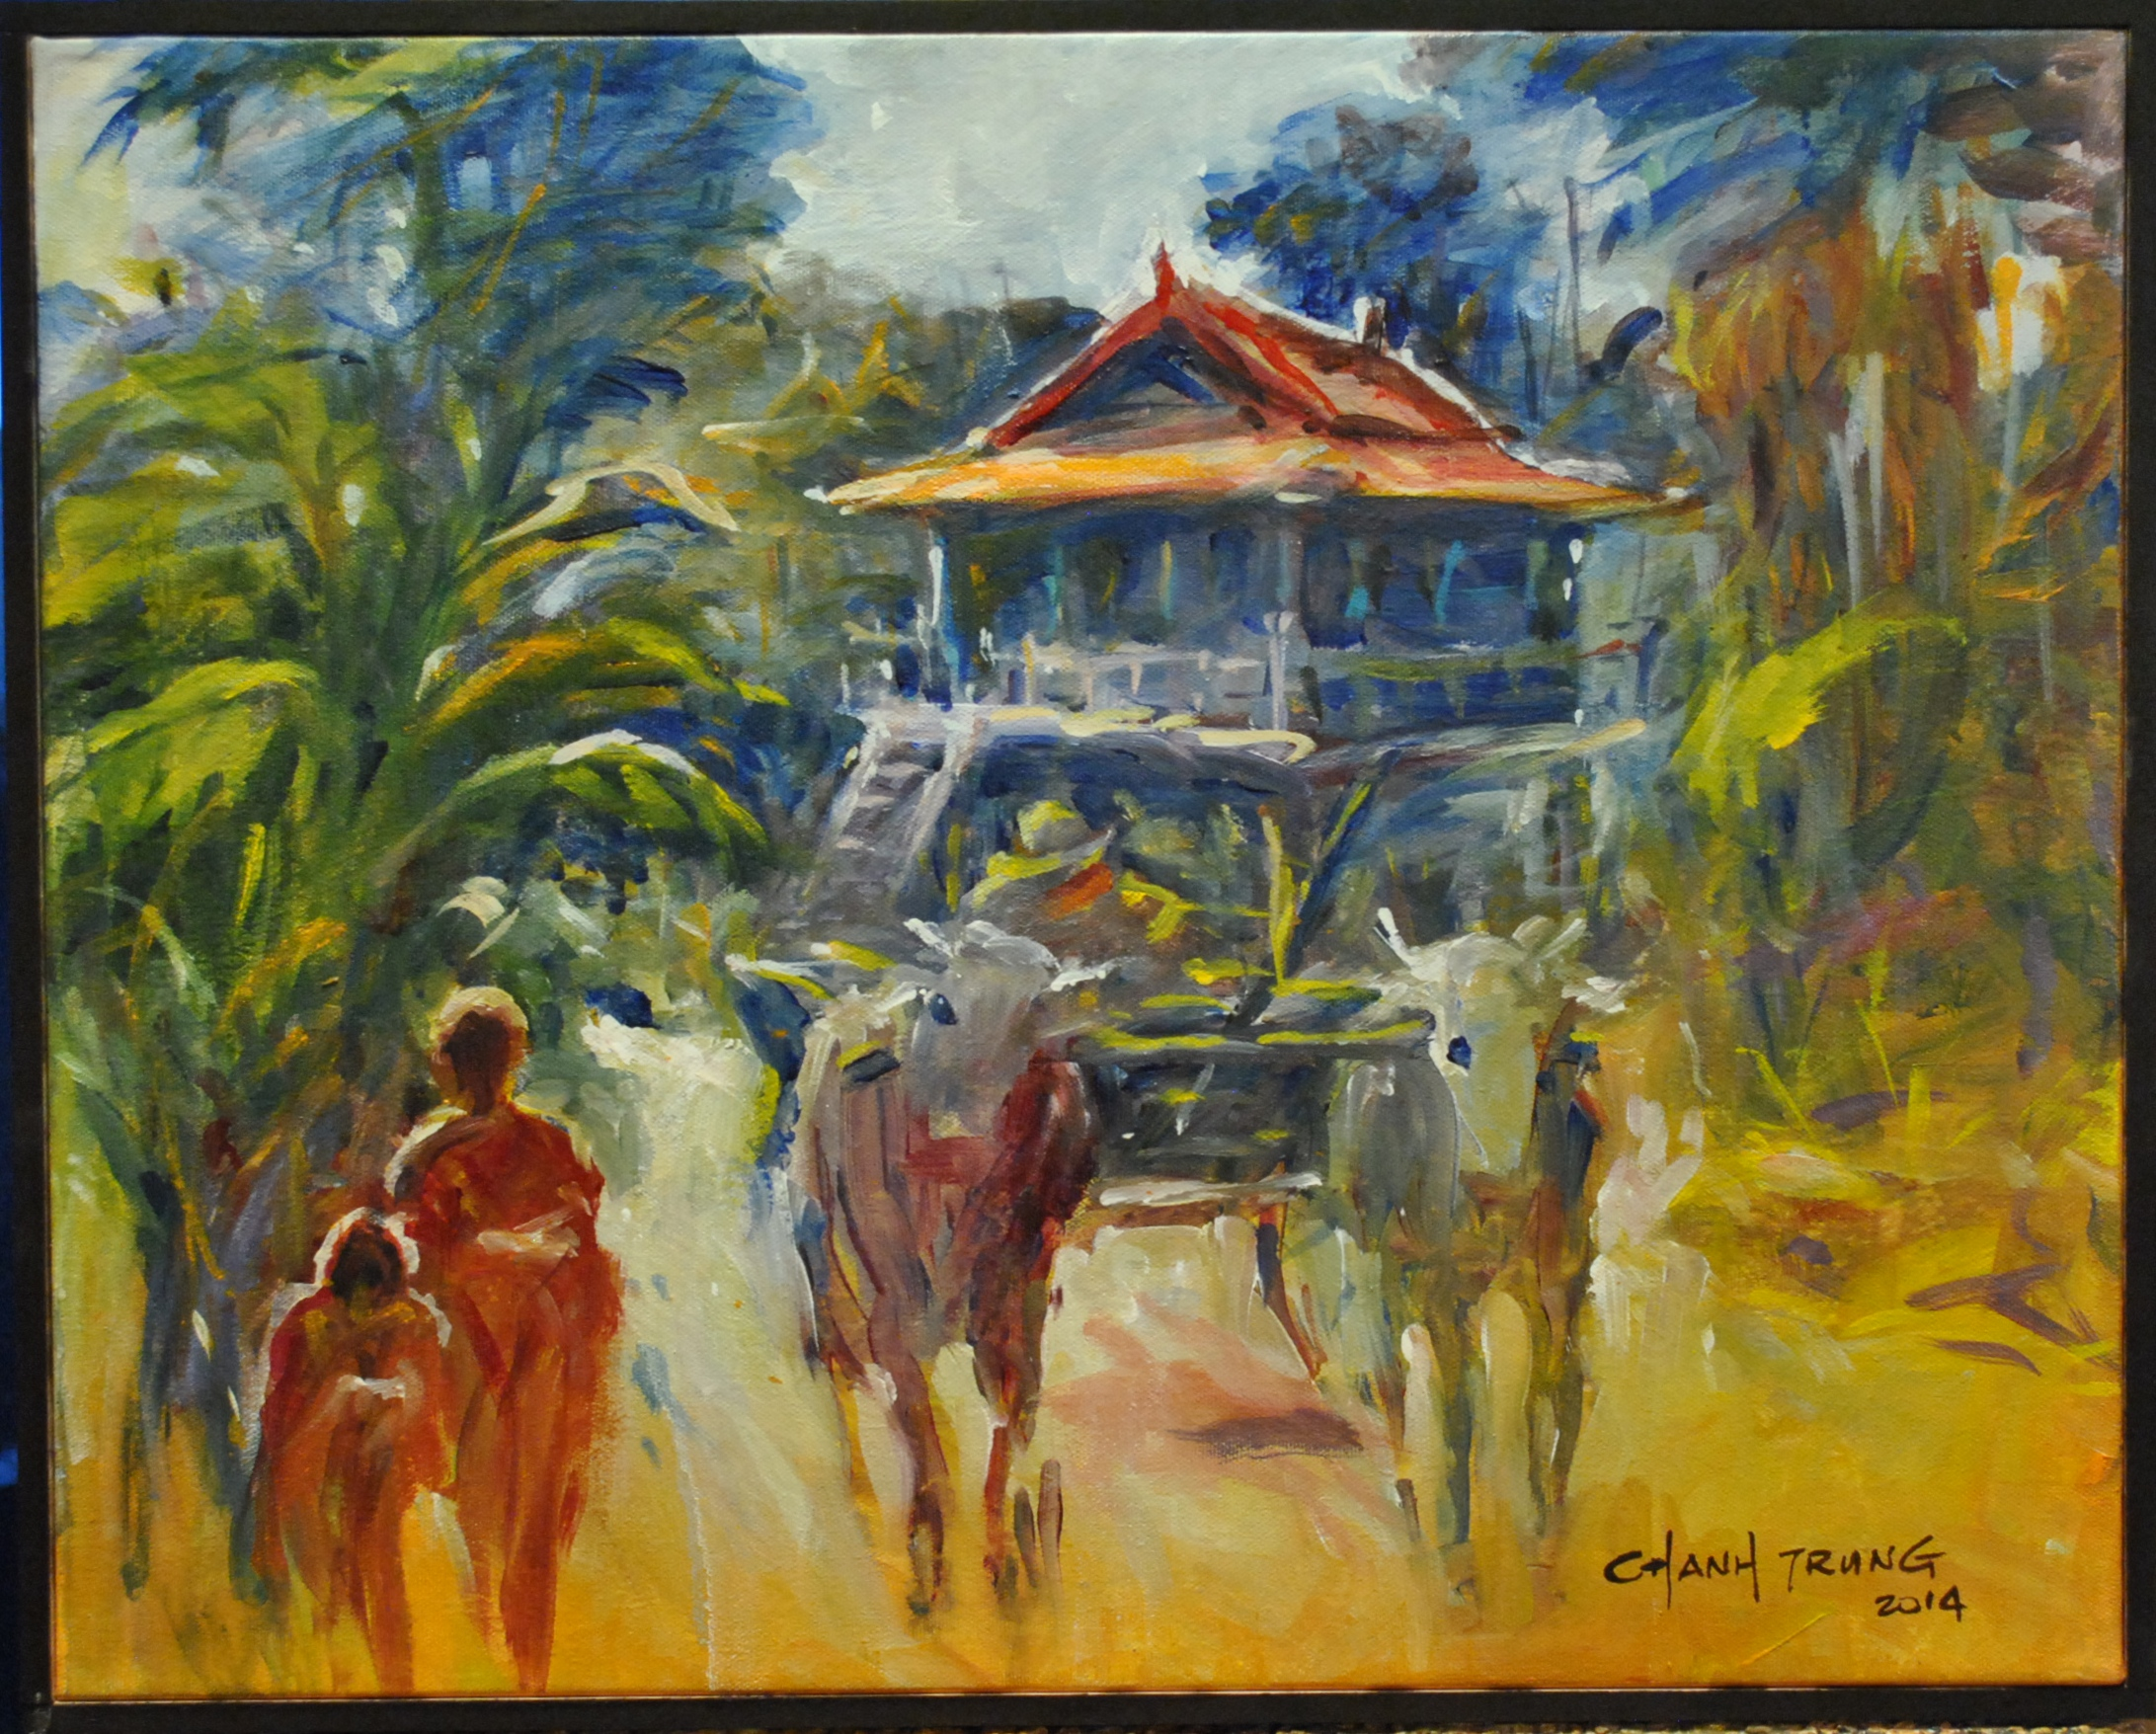 2014, Maison Villageoise,Cambodge